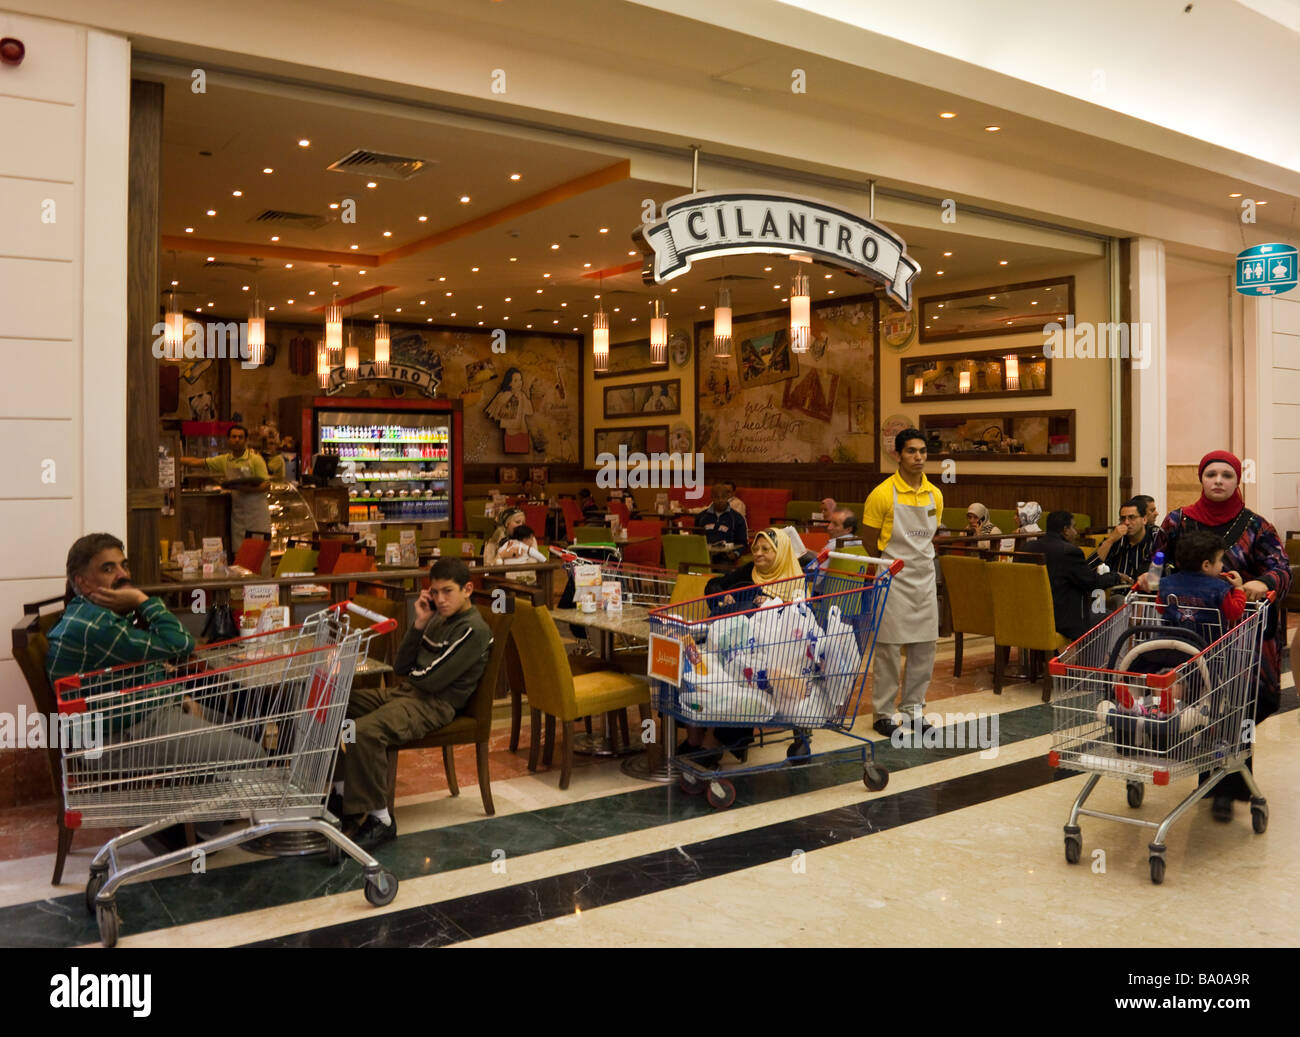 Cilantro cafe, City Center Mall, Cairo, Egypt - Stock Image